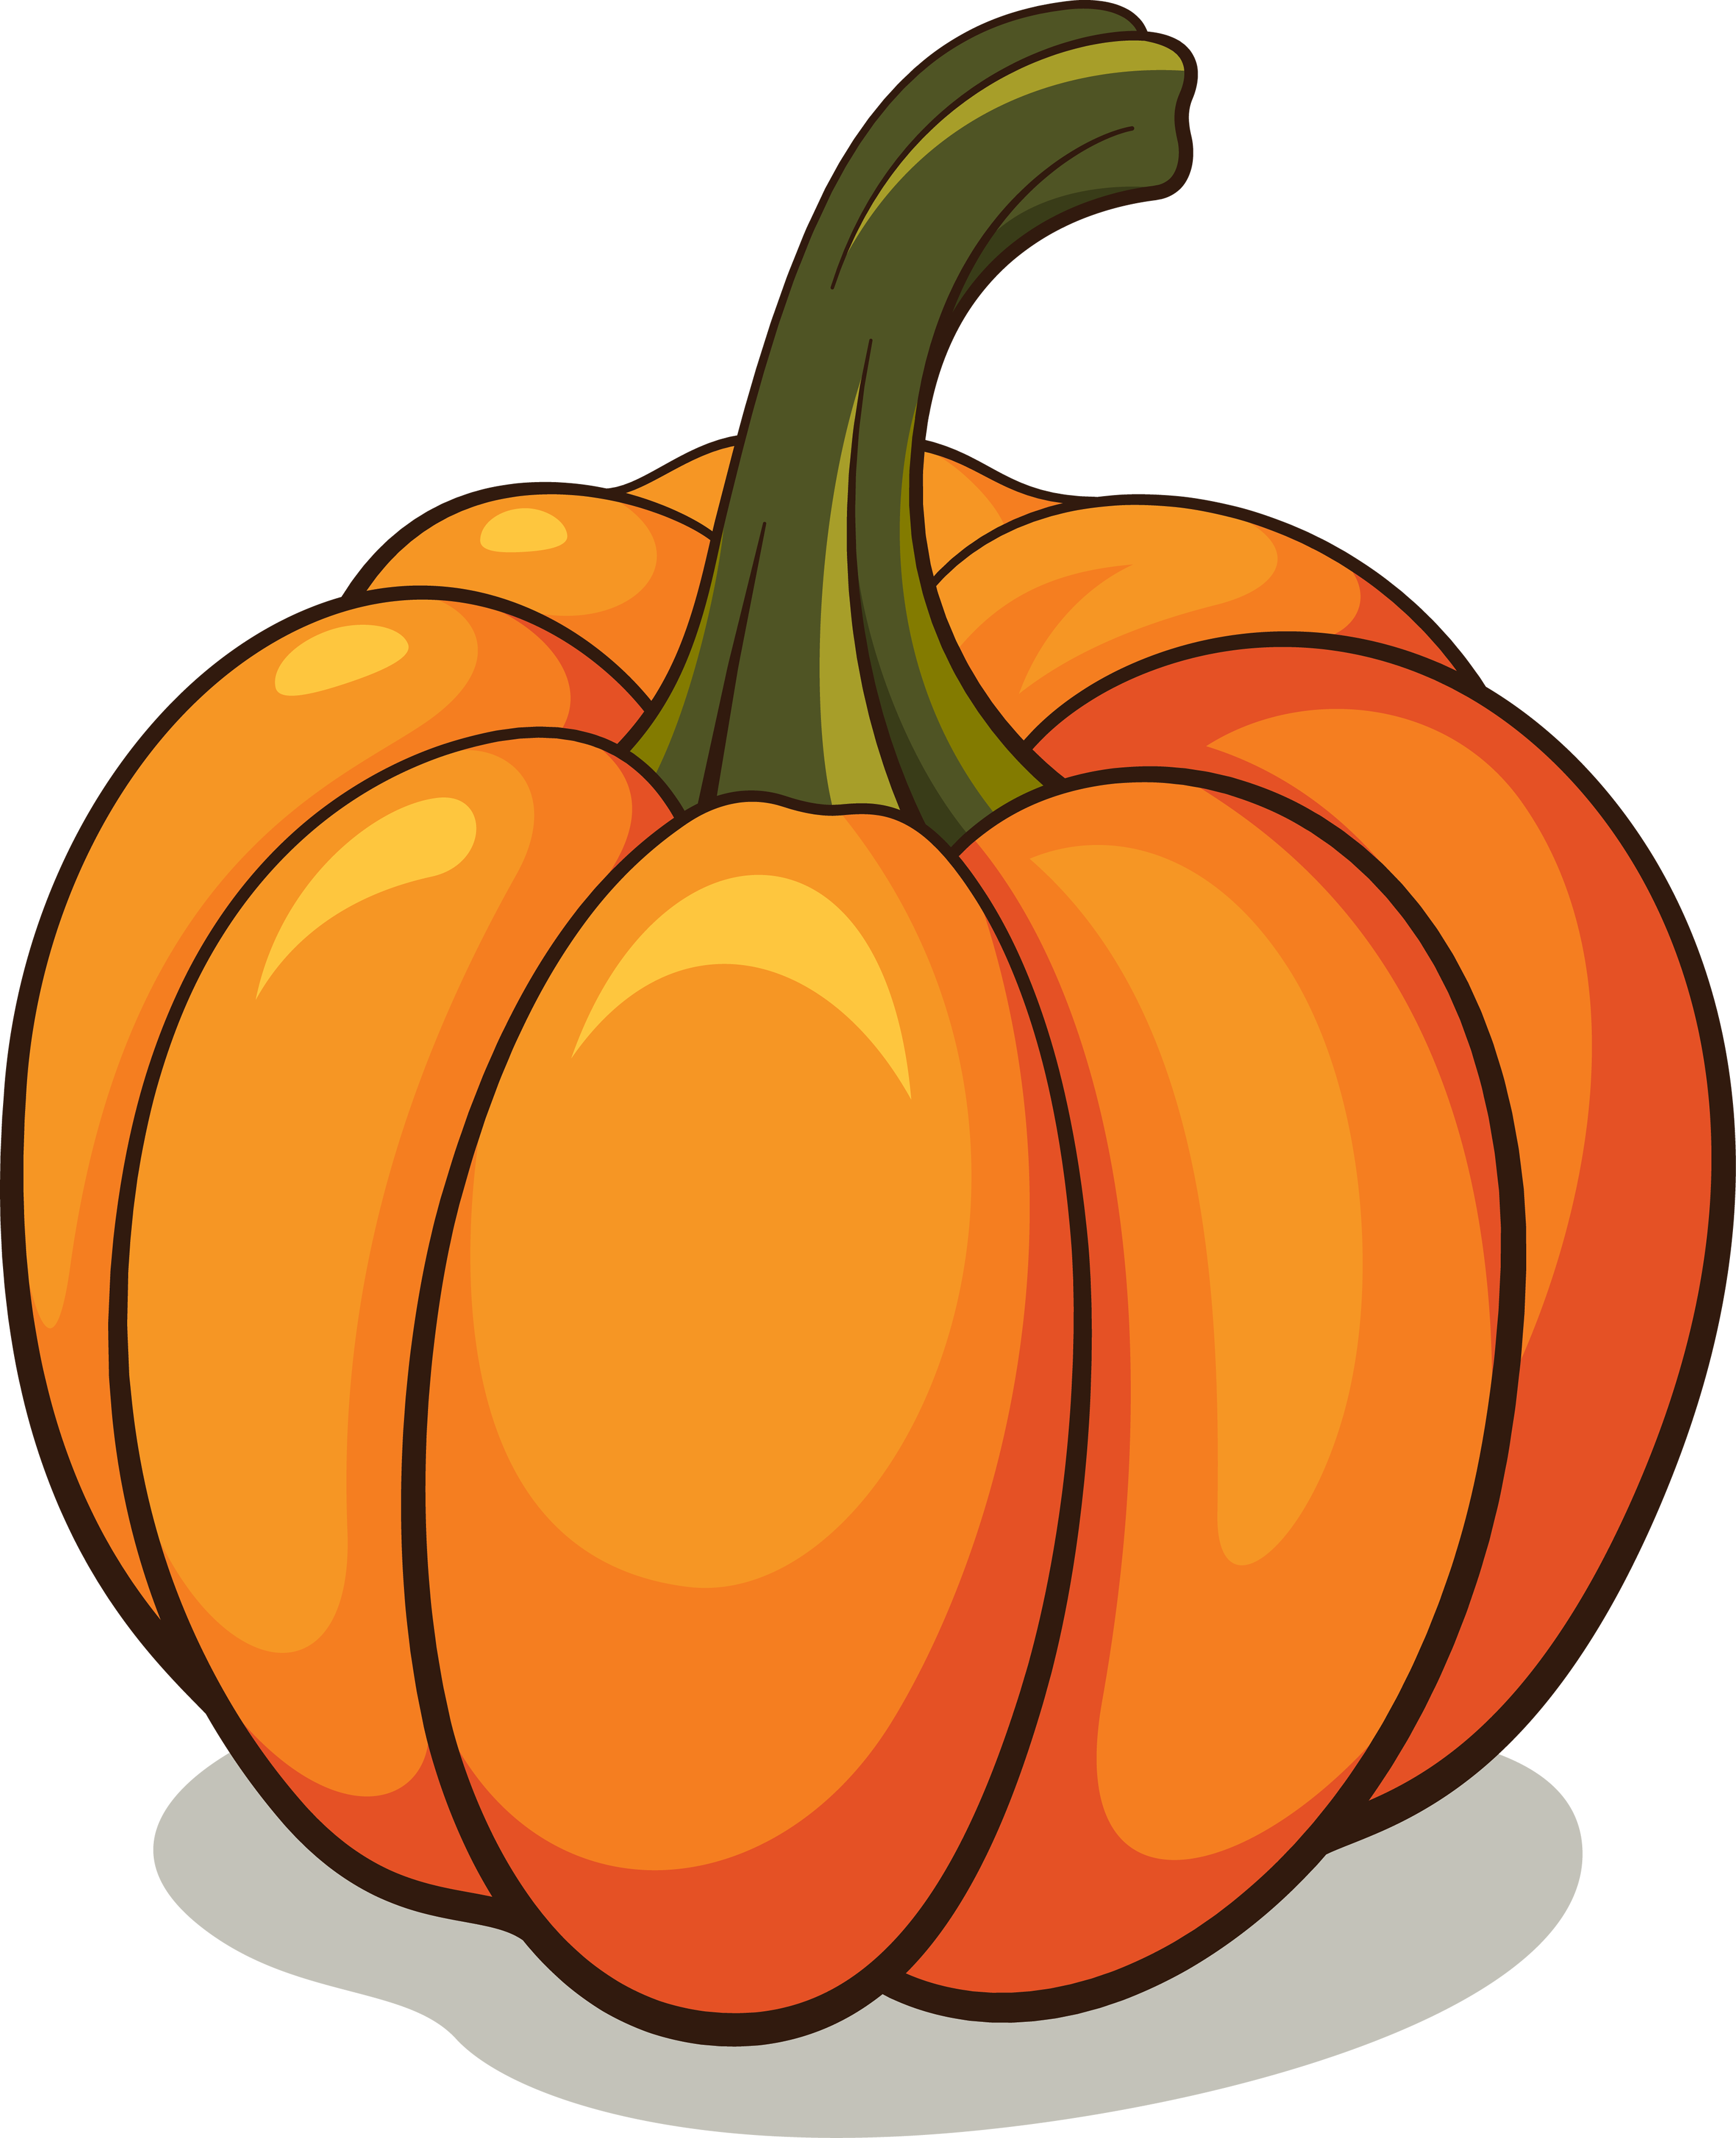 Real pumpkin clipart picture royalty free stock Pumpkin Clipart Png | cyberuse picture royalty free stock